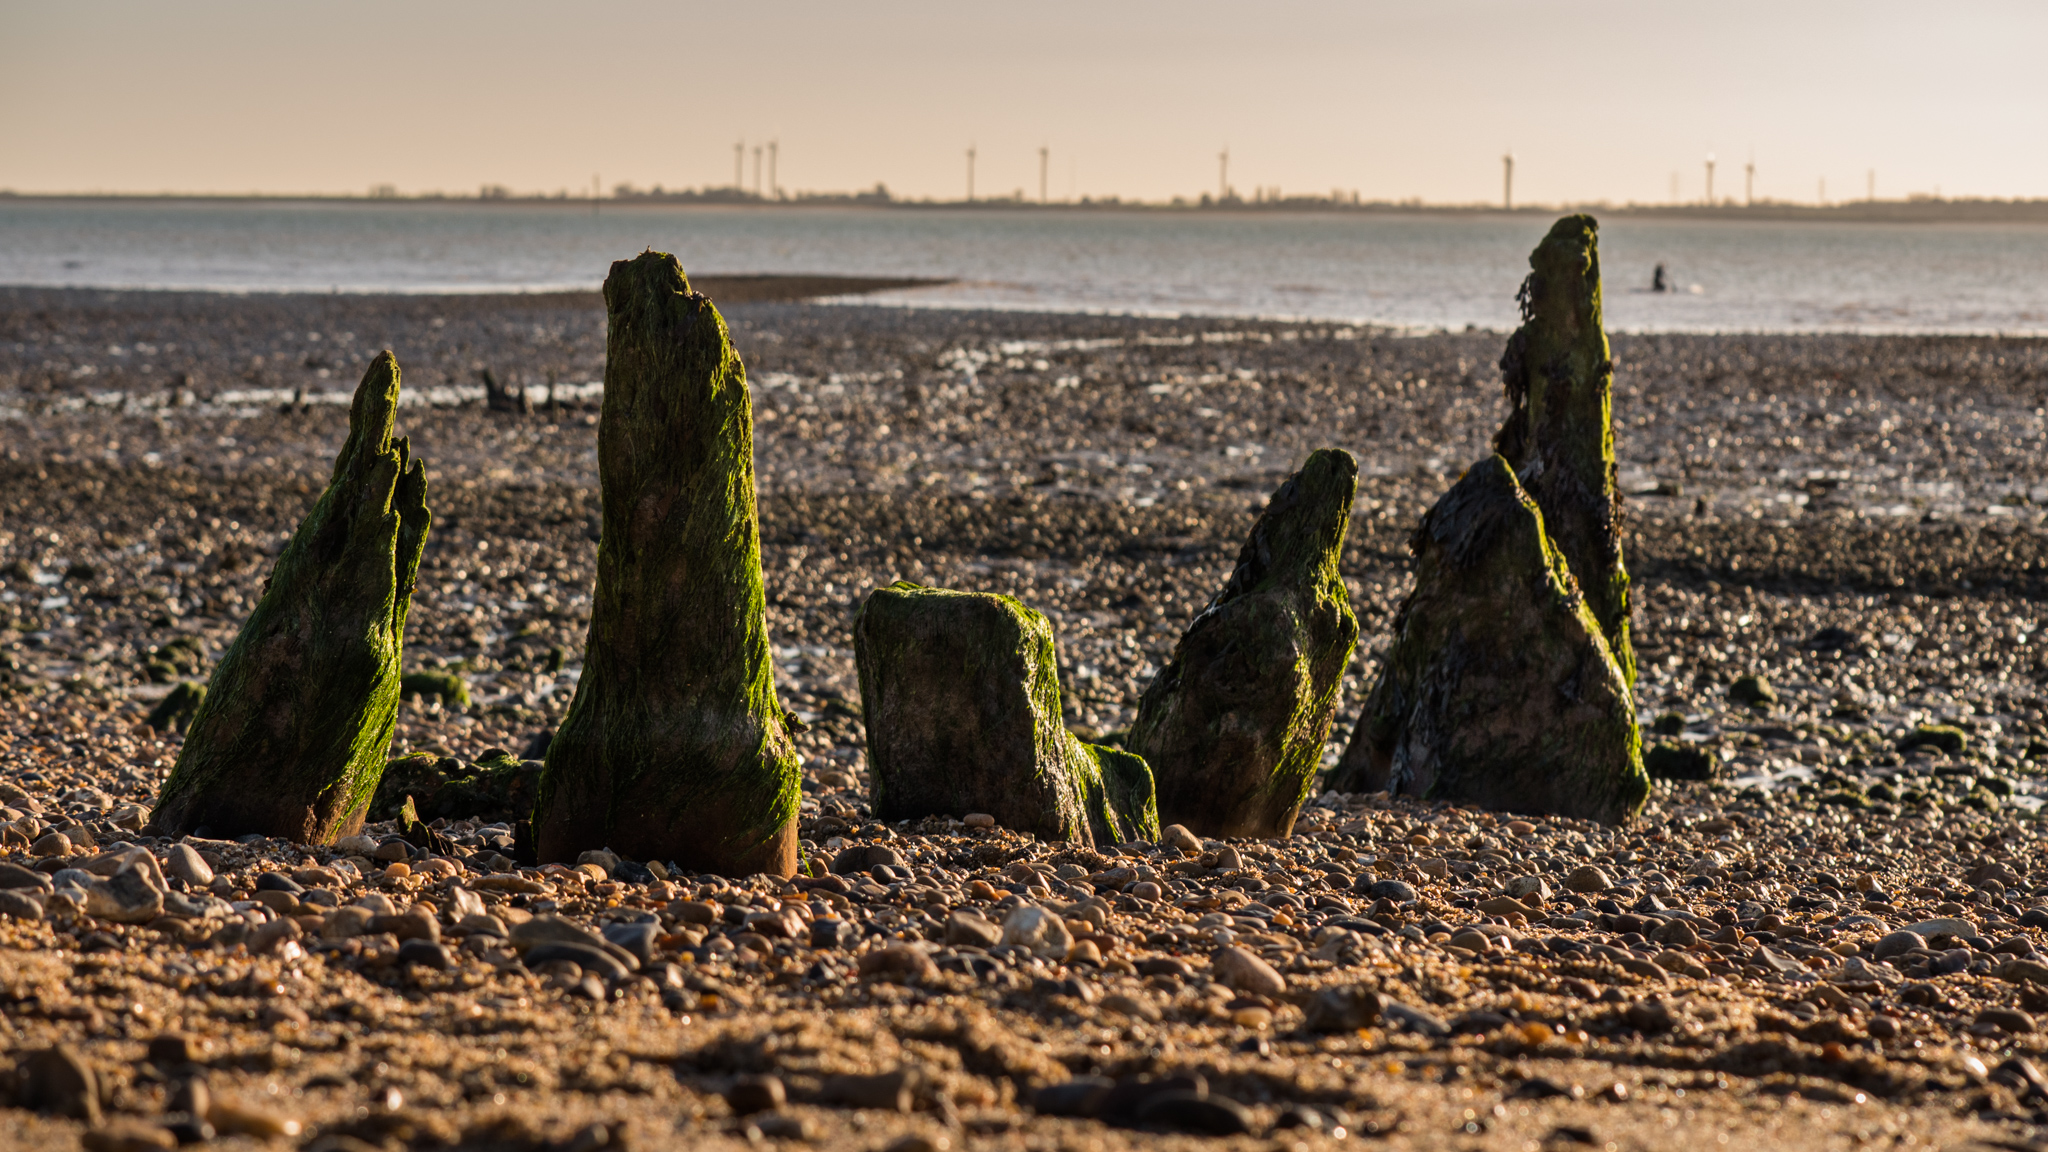 The remains of an old breakwater on the beach